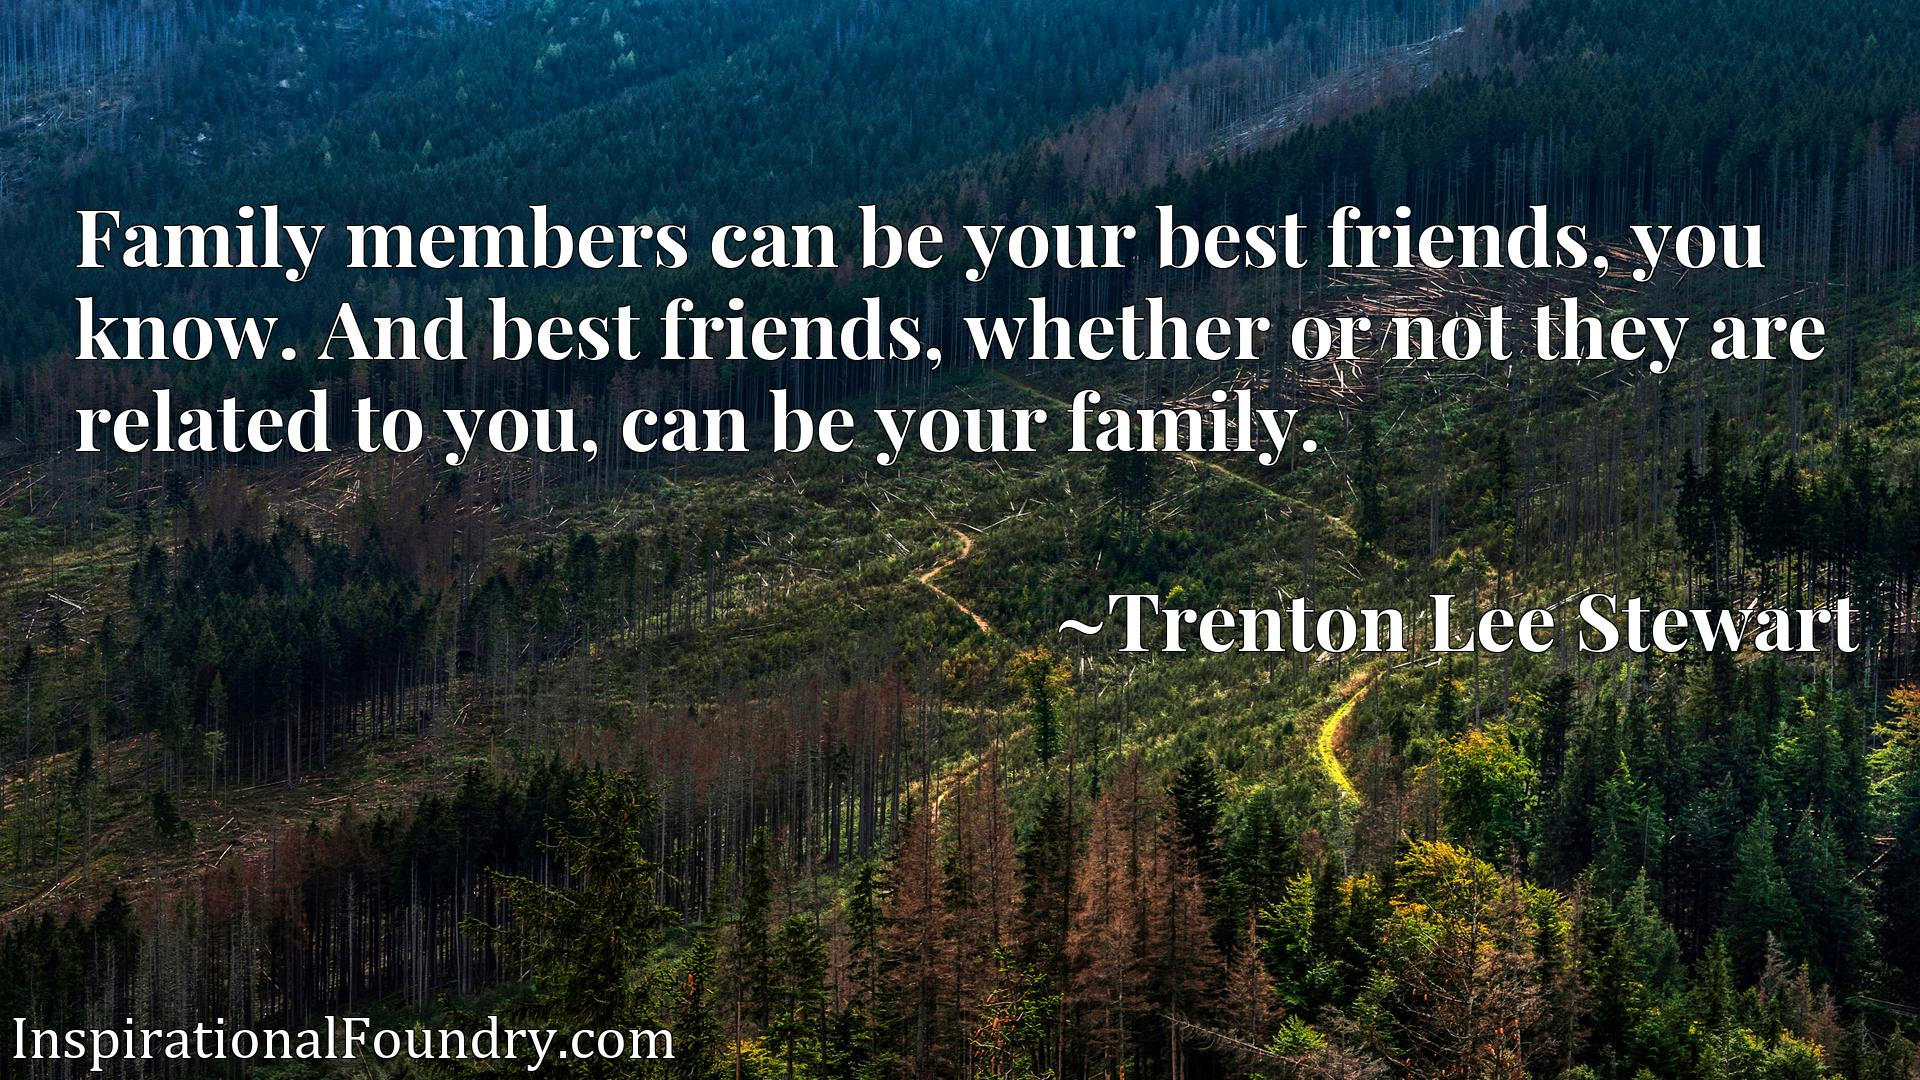 Family members can be your best friends, you know. And best friends, whether or not they are related to you, can be your family.